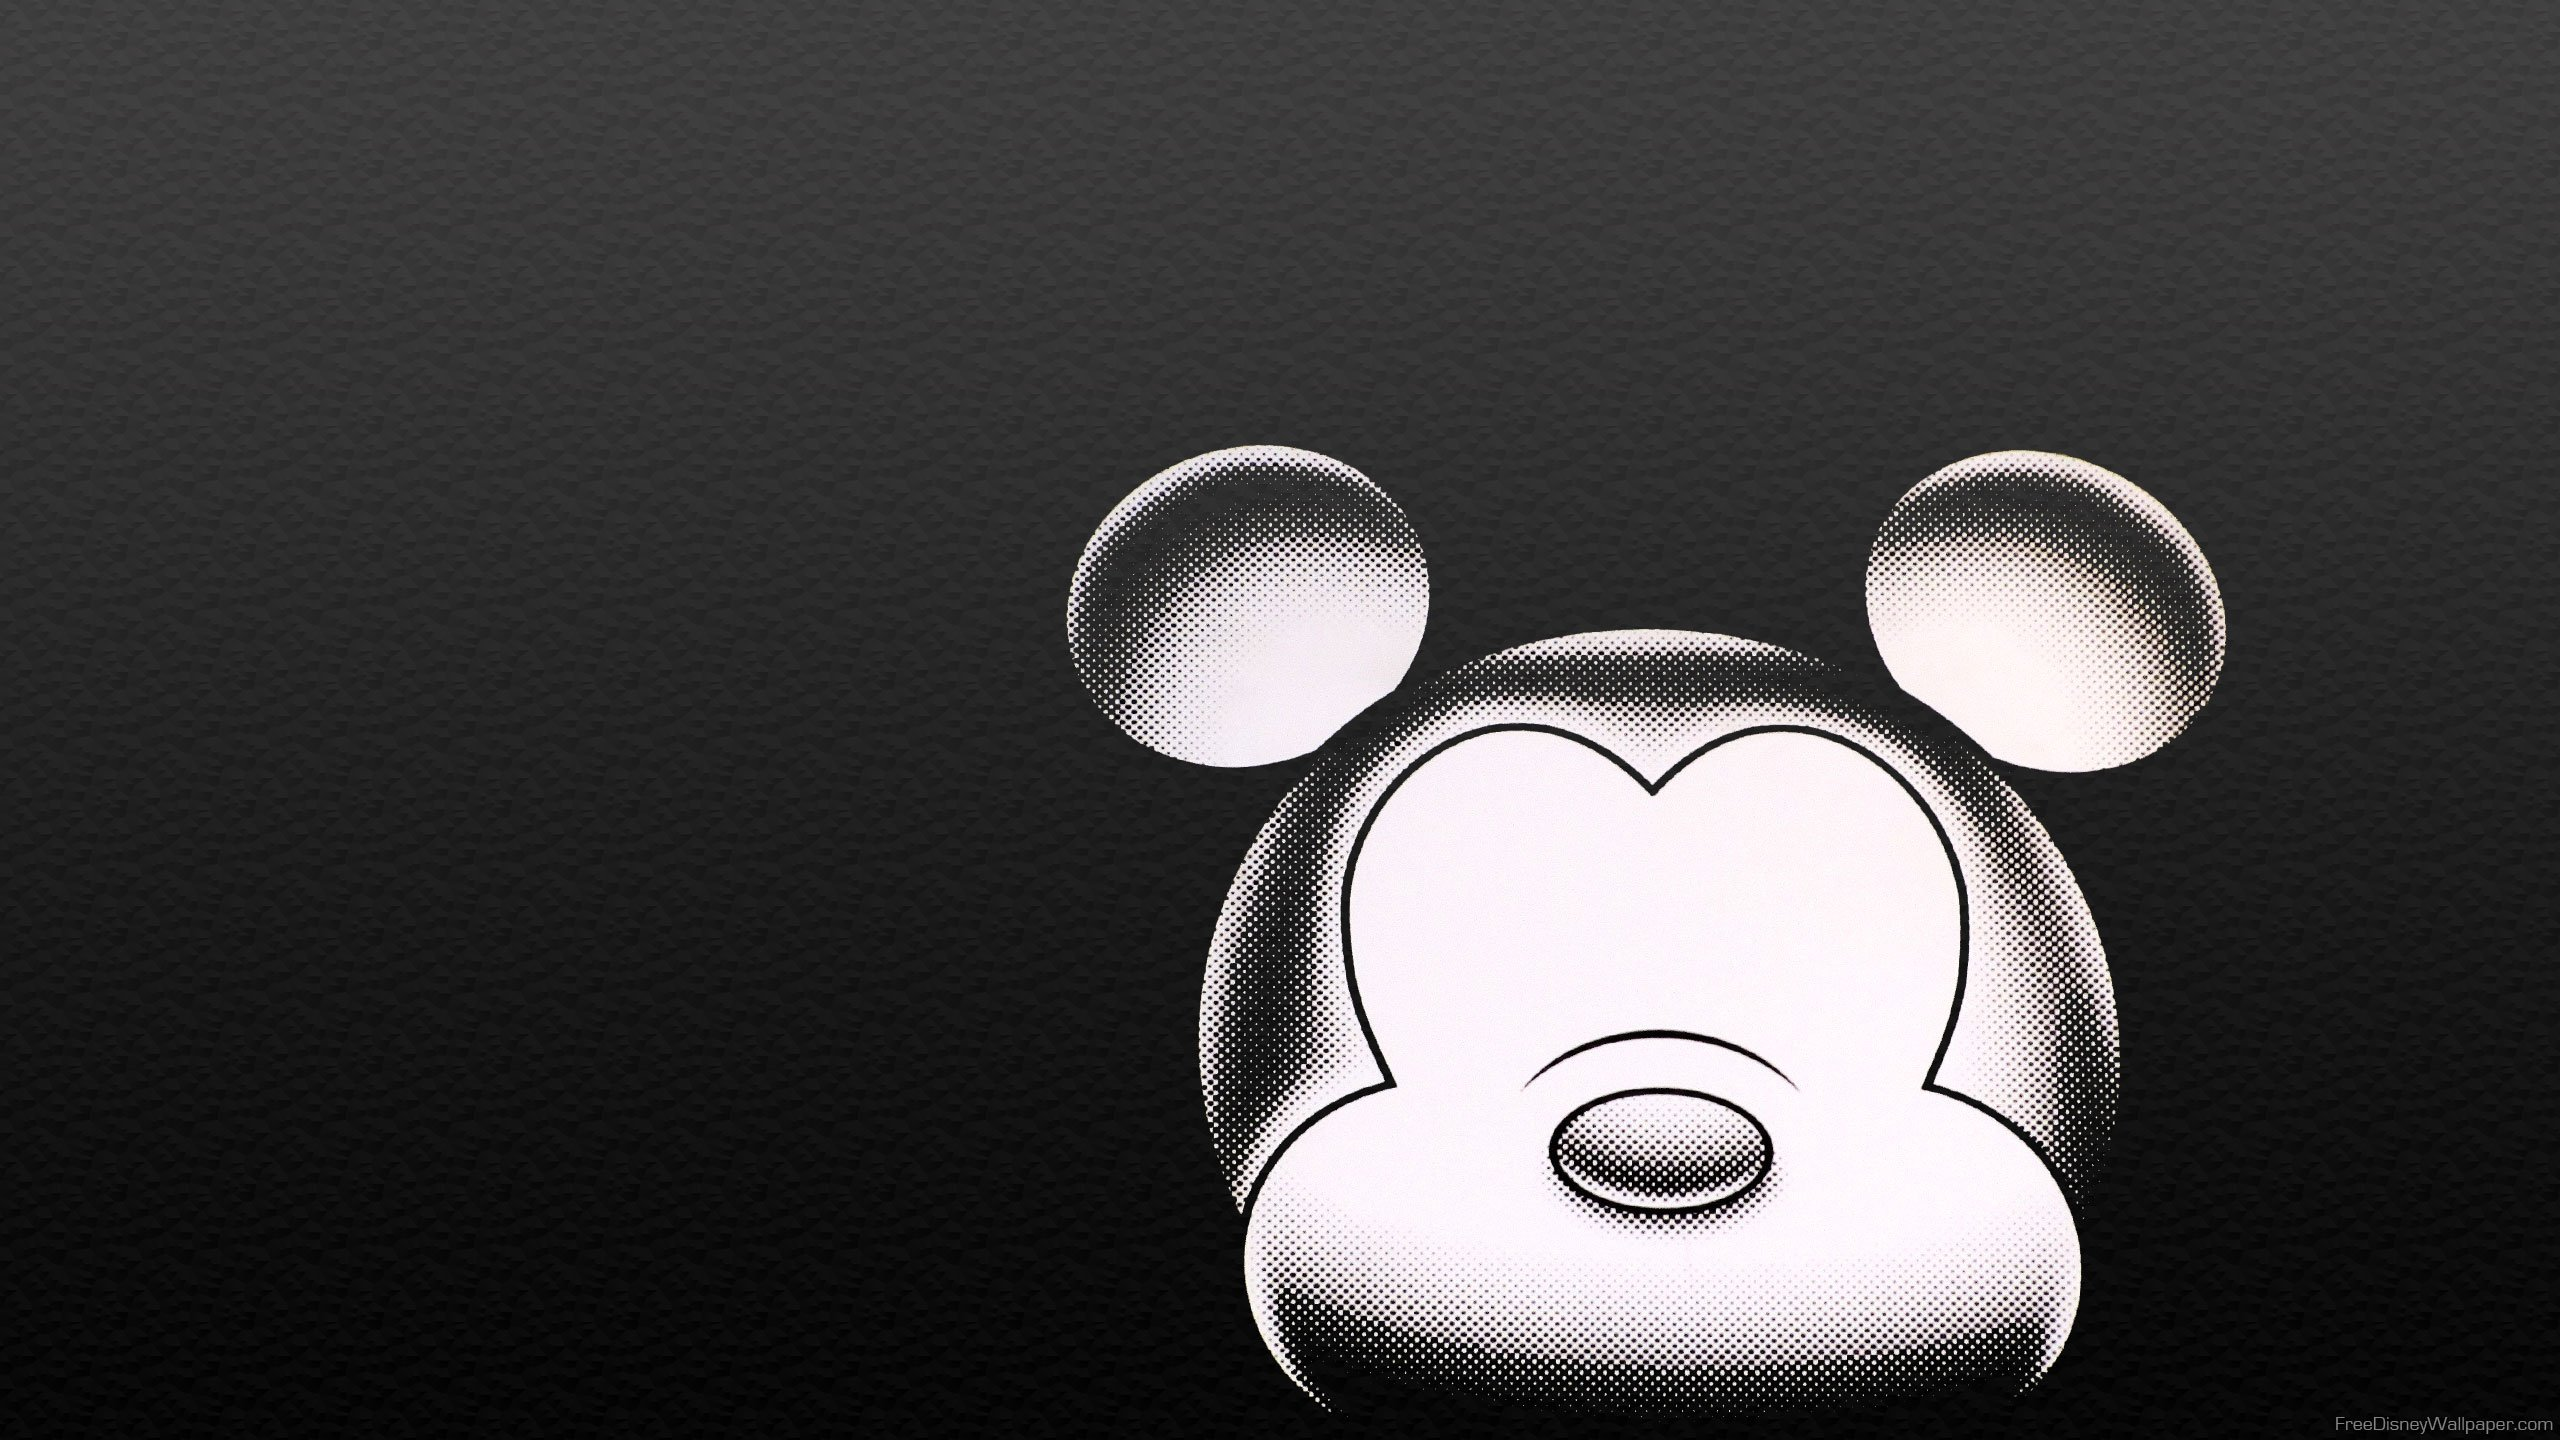 Mickey Mouse Hd Wallpaper Apps Android Desktop Wallpaper Mickey